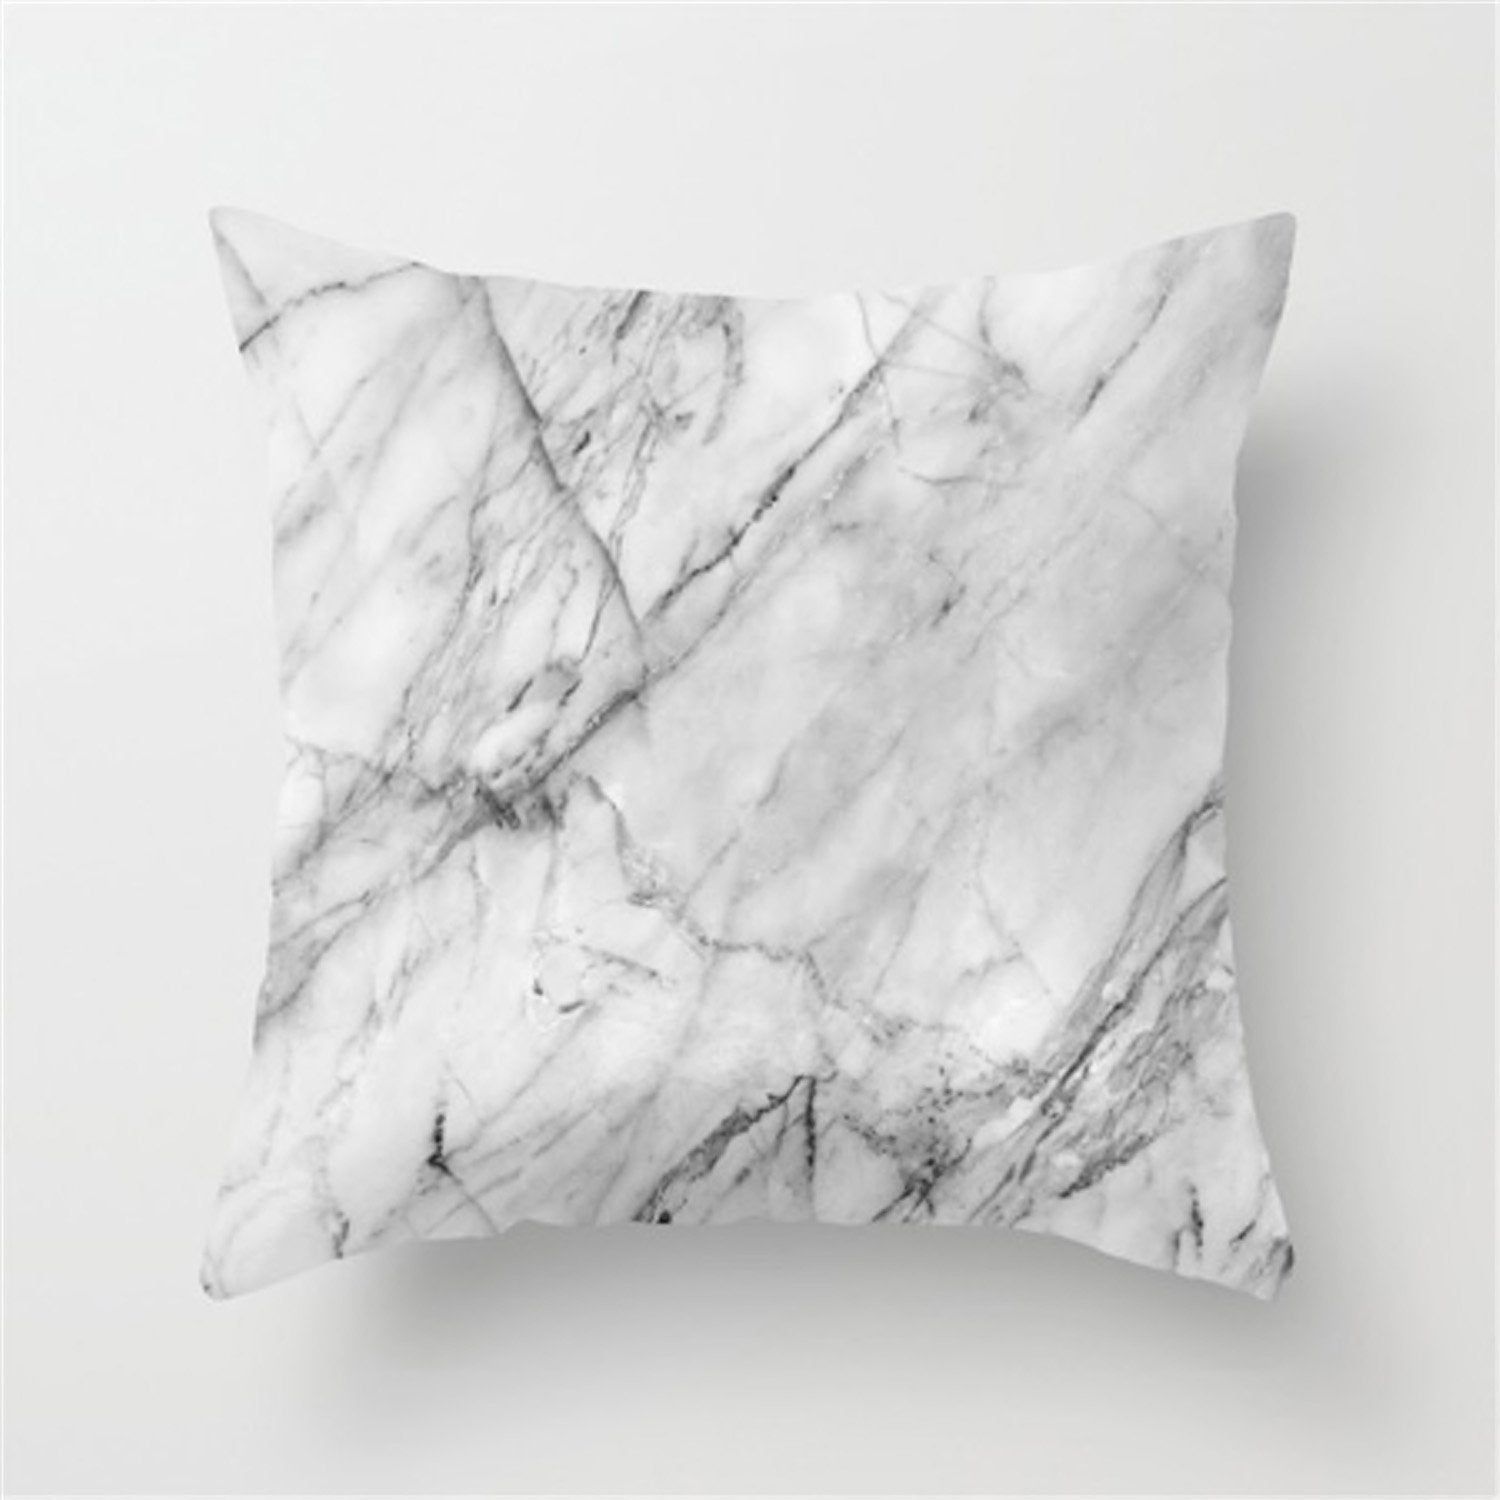 Soft Marble Cushions - Violet and Eve